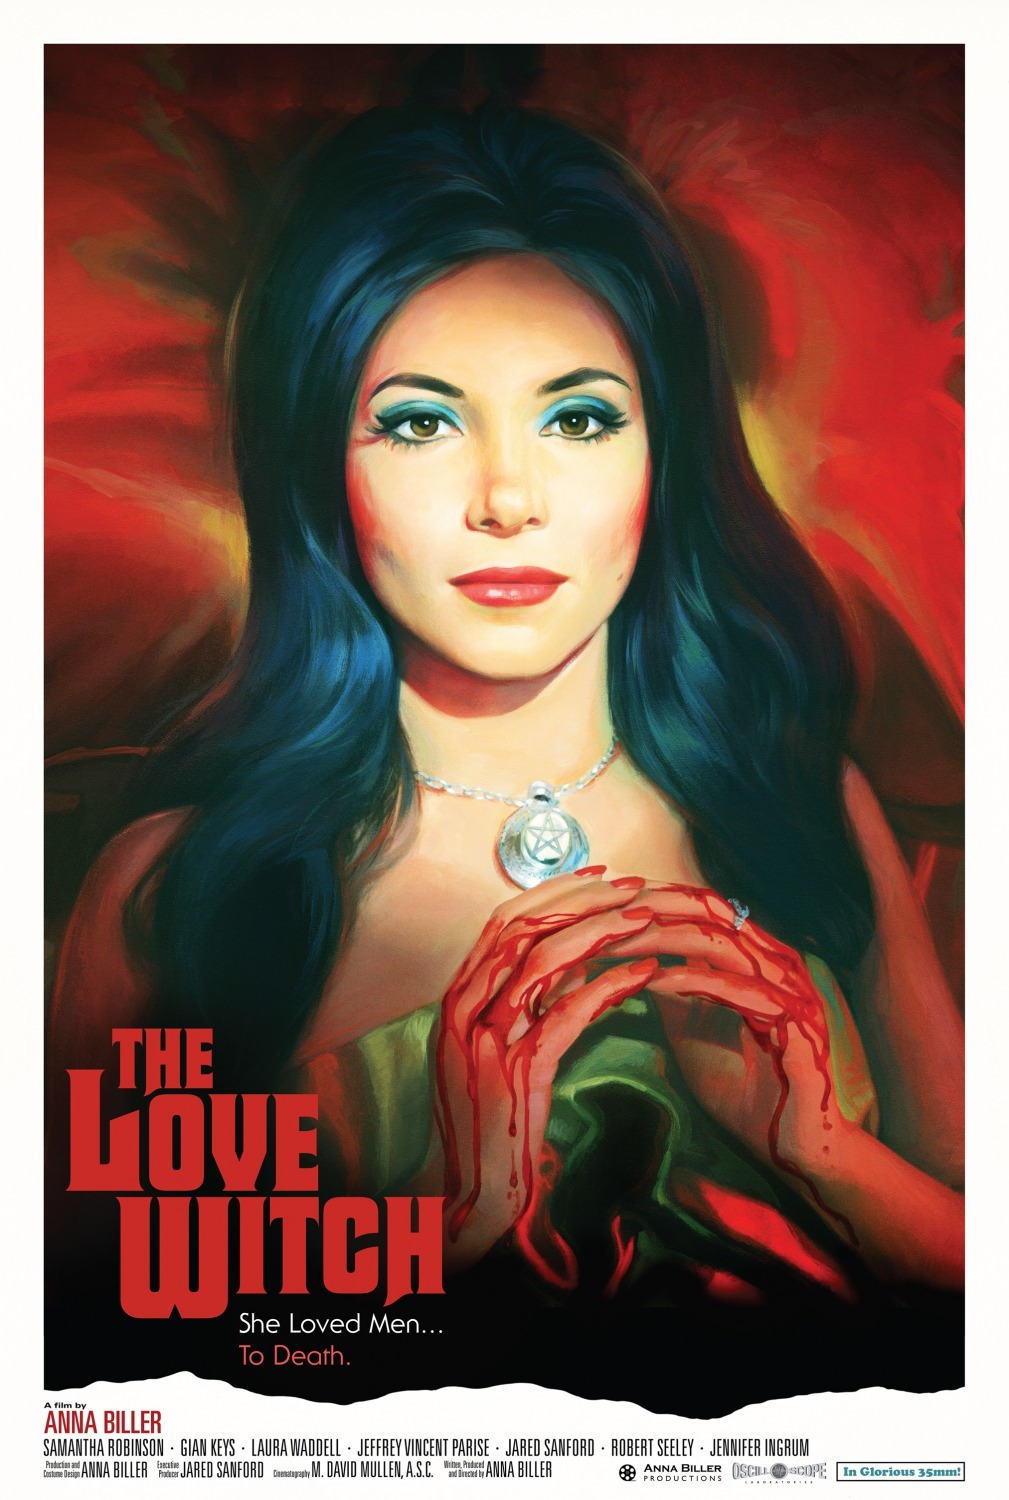 The Love Witch (2016) - Directed by: Anna BillerStarring: Samantha Robinson, Jeffrey Vincent Parise, Laura WaddellRated: NR (Best Guess: R)Running Time: 2hTMM Score: 5 Stars (loved it)STRENGTHS: Production Design, Dreamy Retro VibesWEAKNESSES: Slightly Longer than Necessary